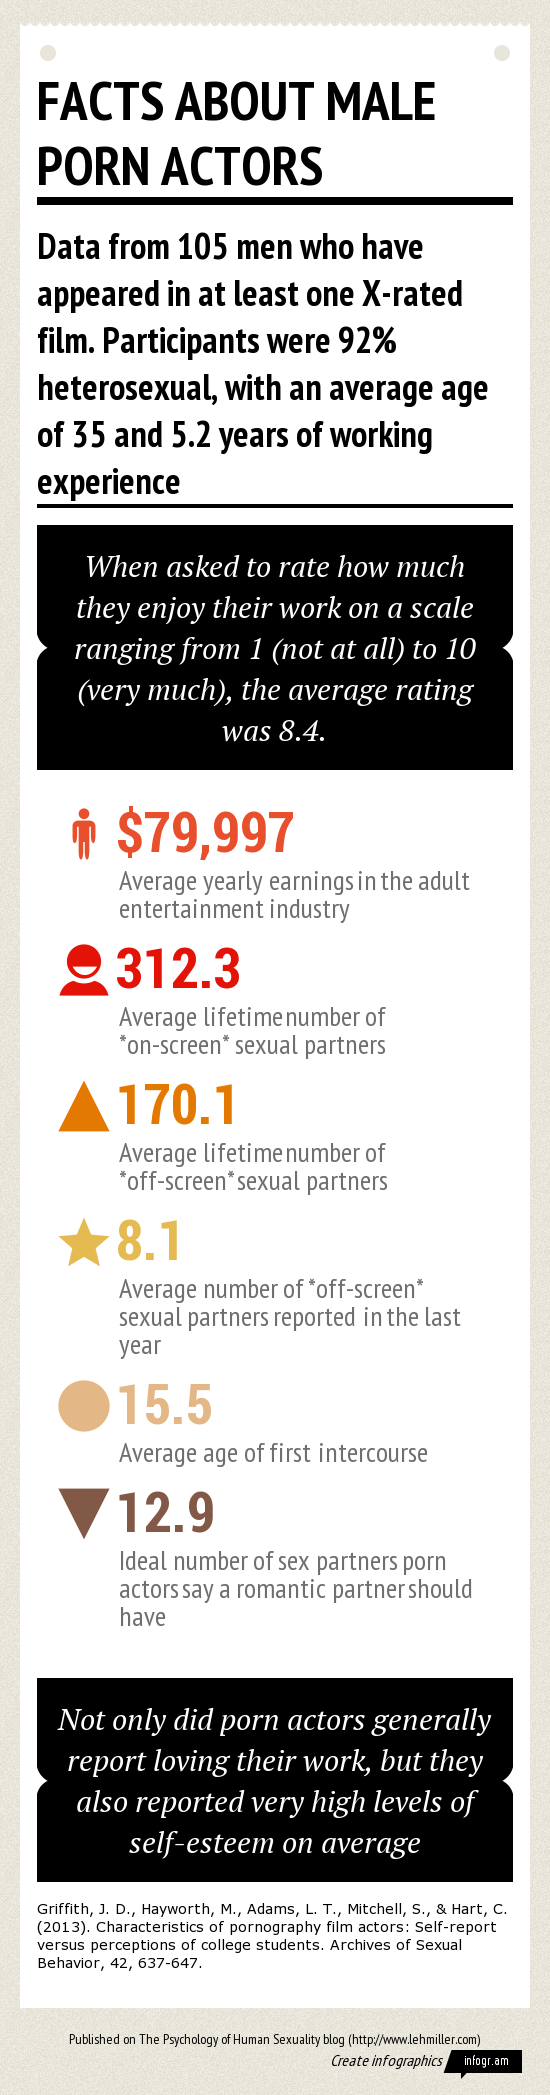 How much money does the porn industry make